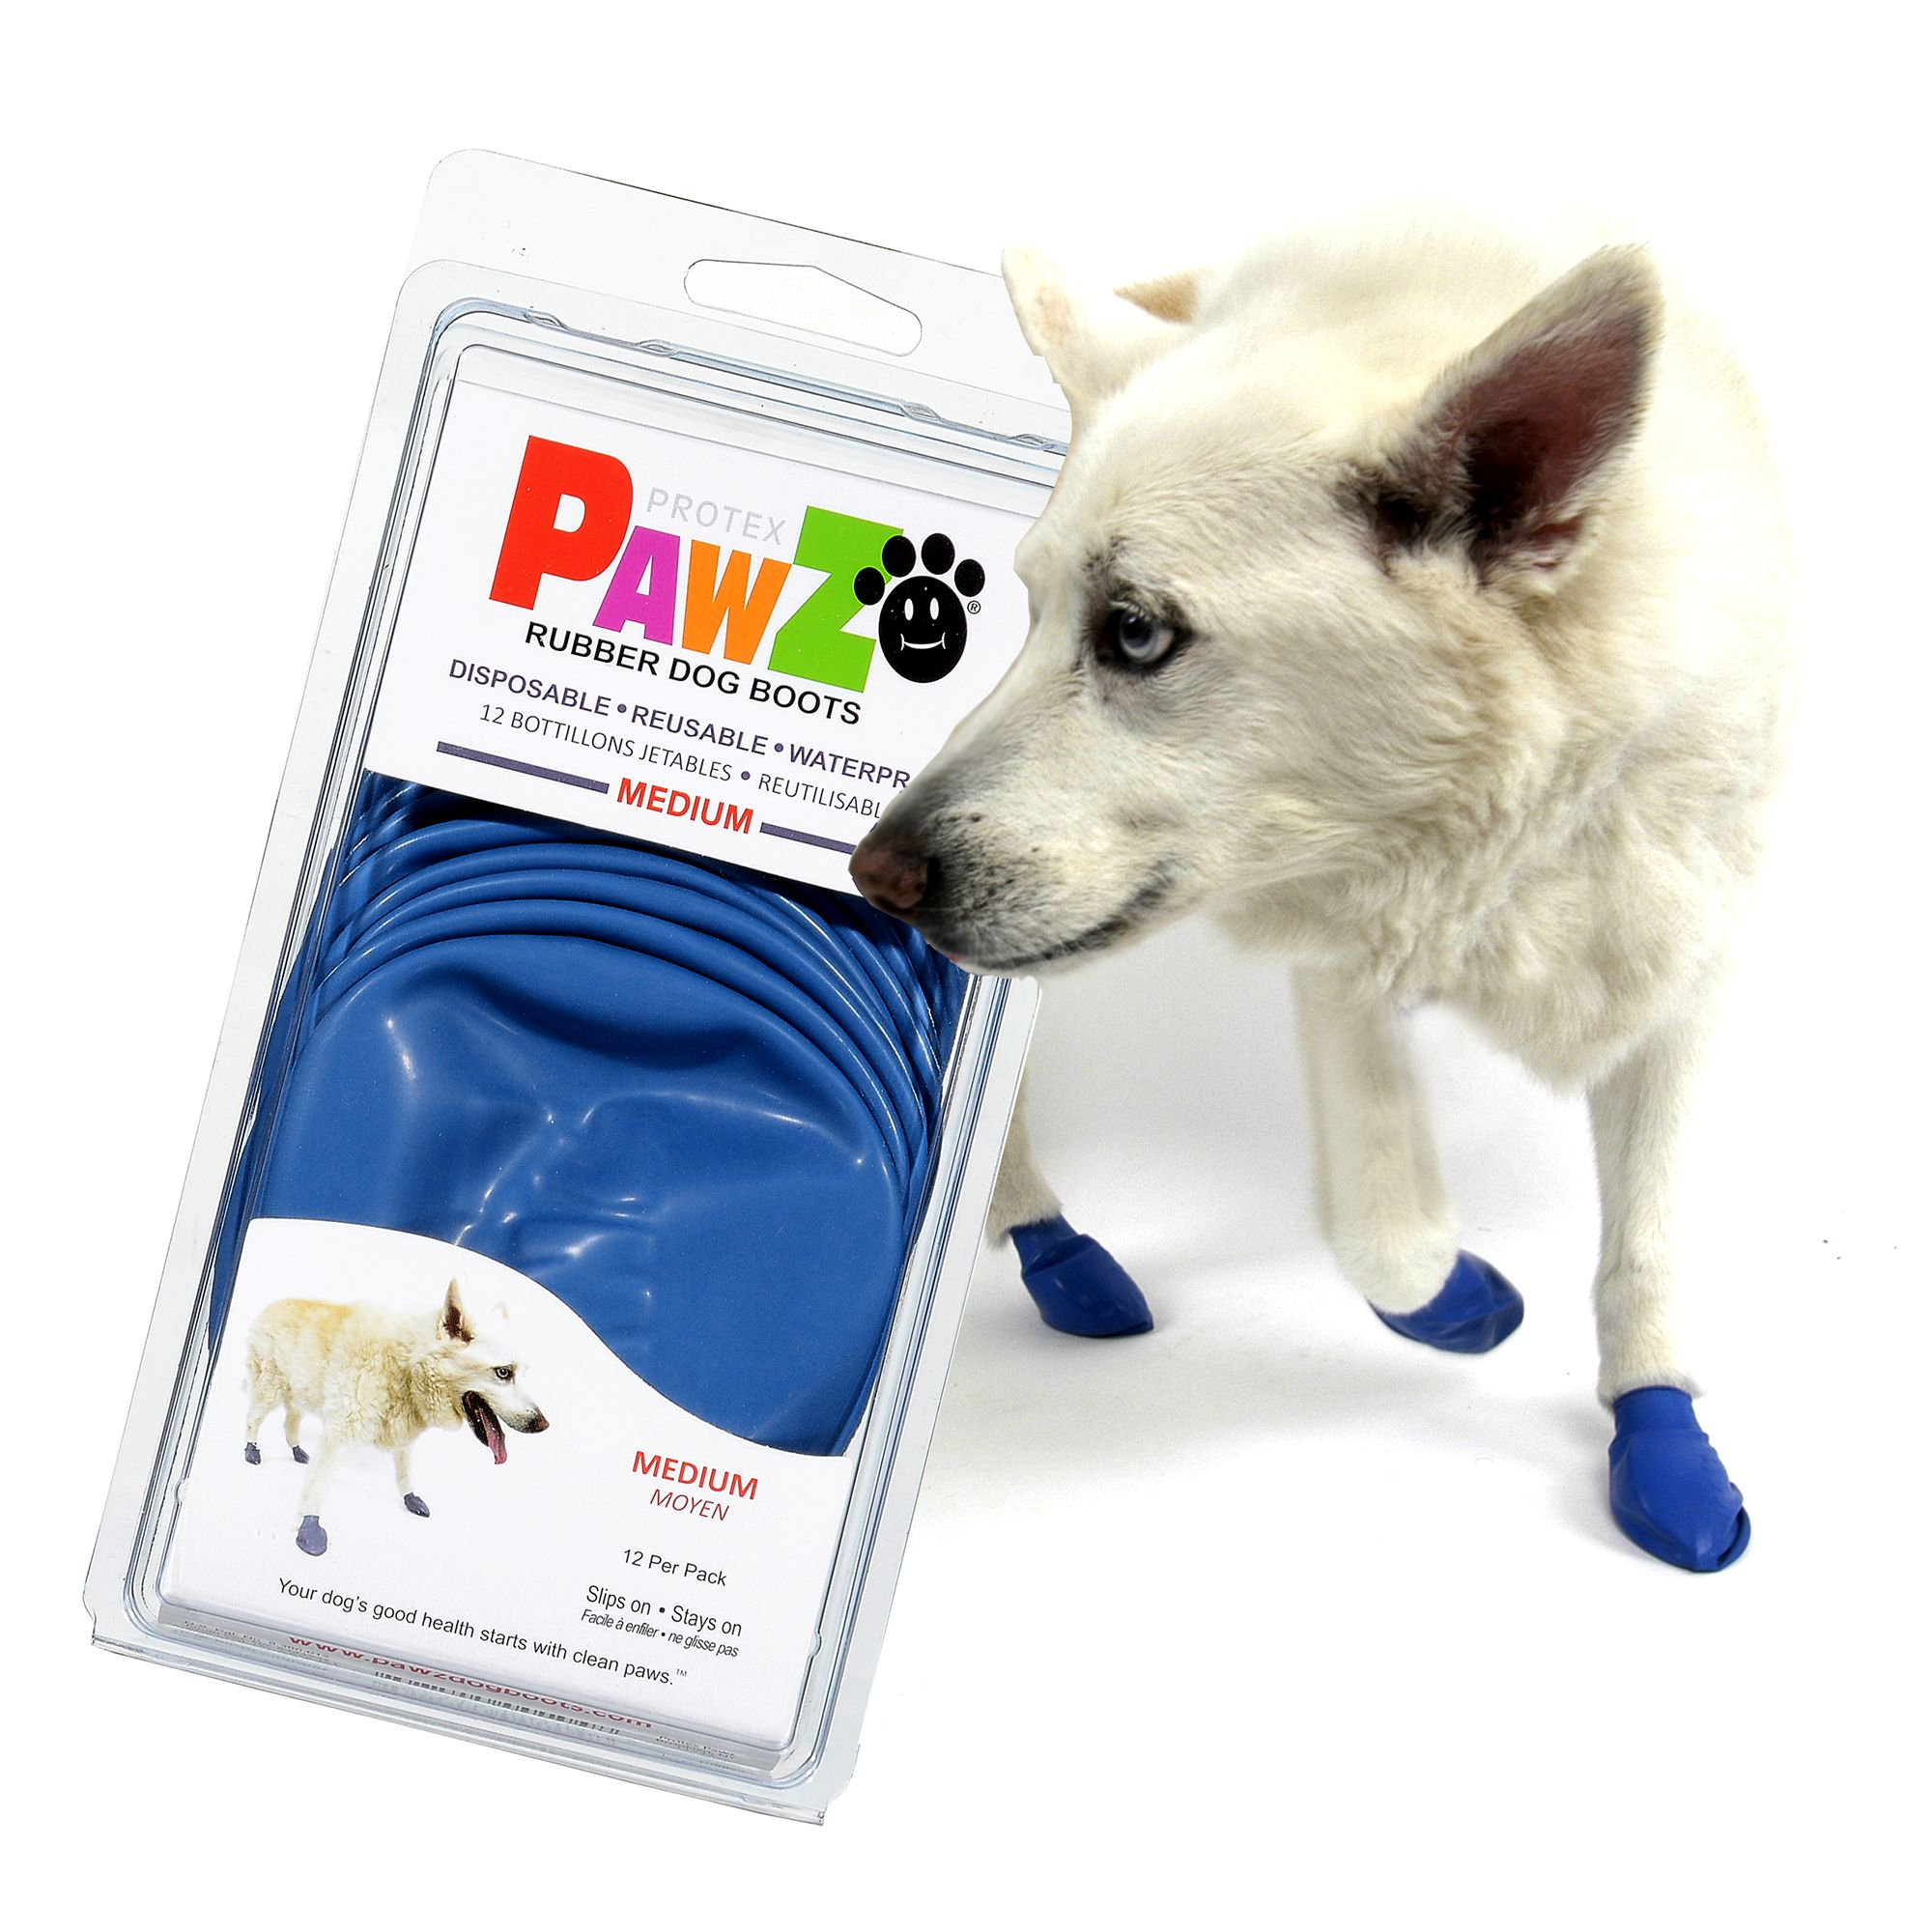 PROTECT YOUR DOG'S PAWS FROM HOT SURFACES | todocat.com